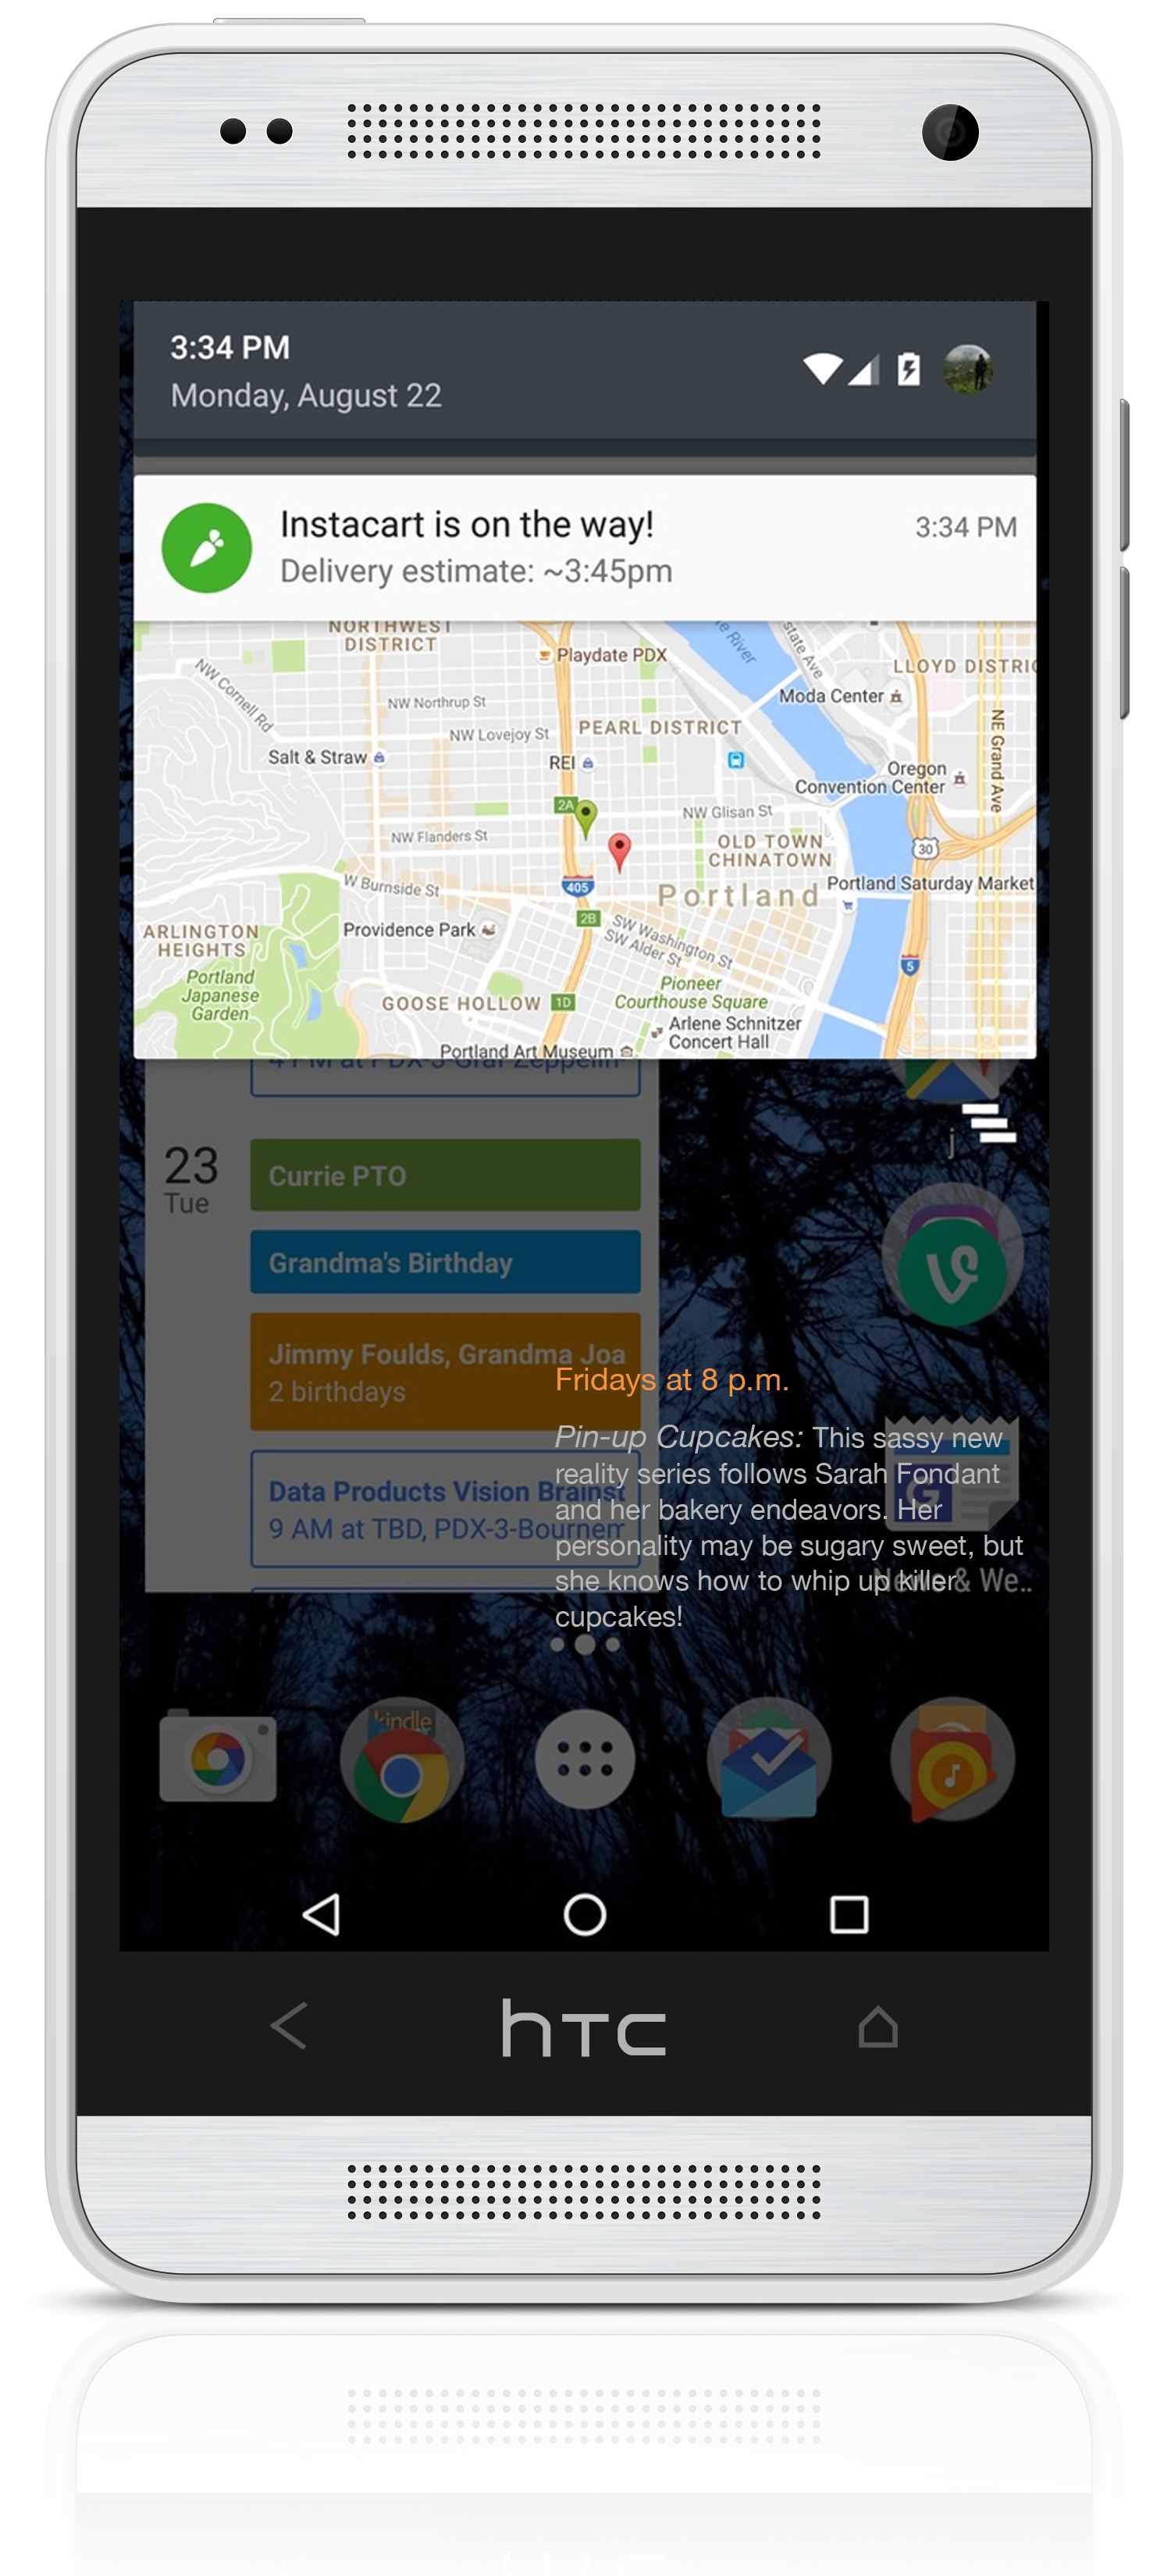 rich-notification-example-map-showing-delivery-status-on-smartphone-screen